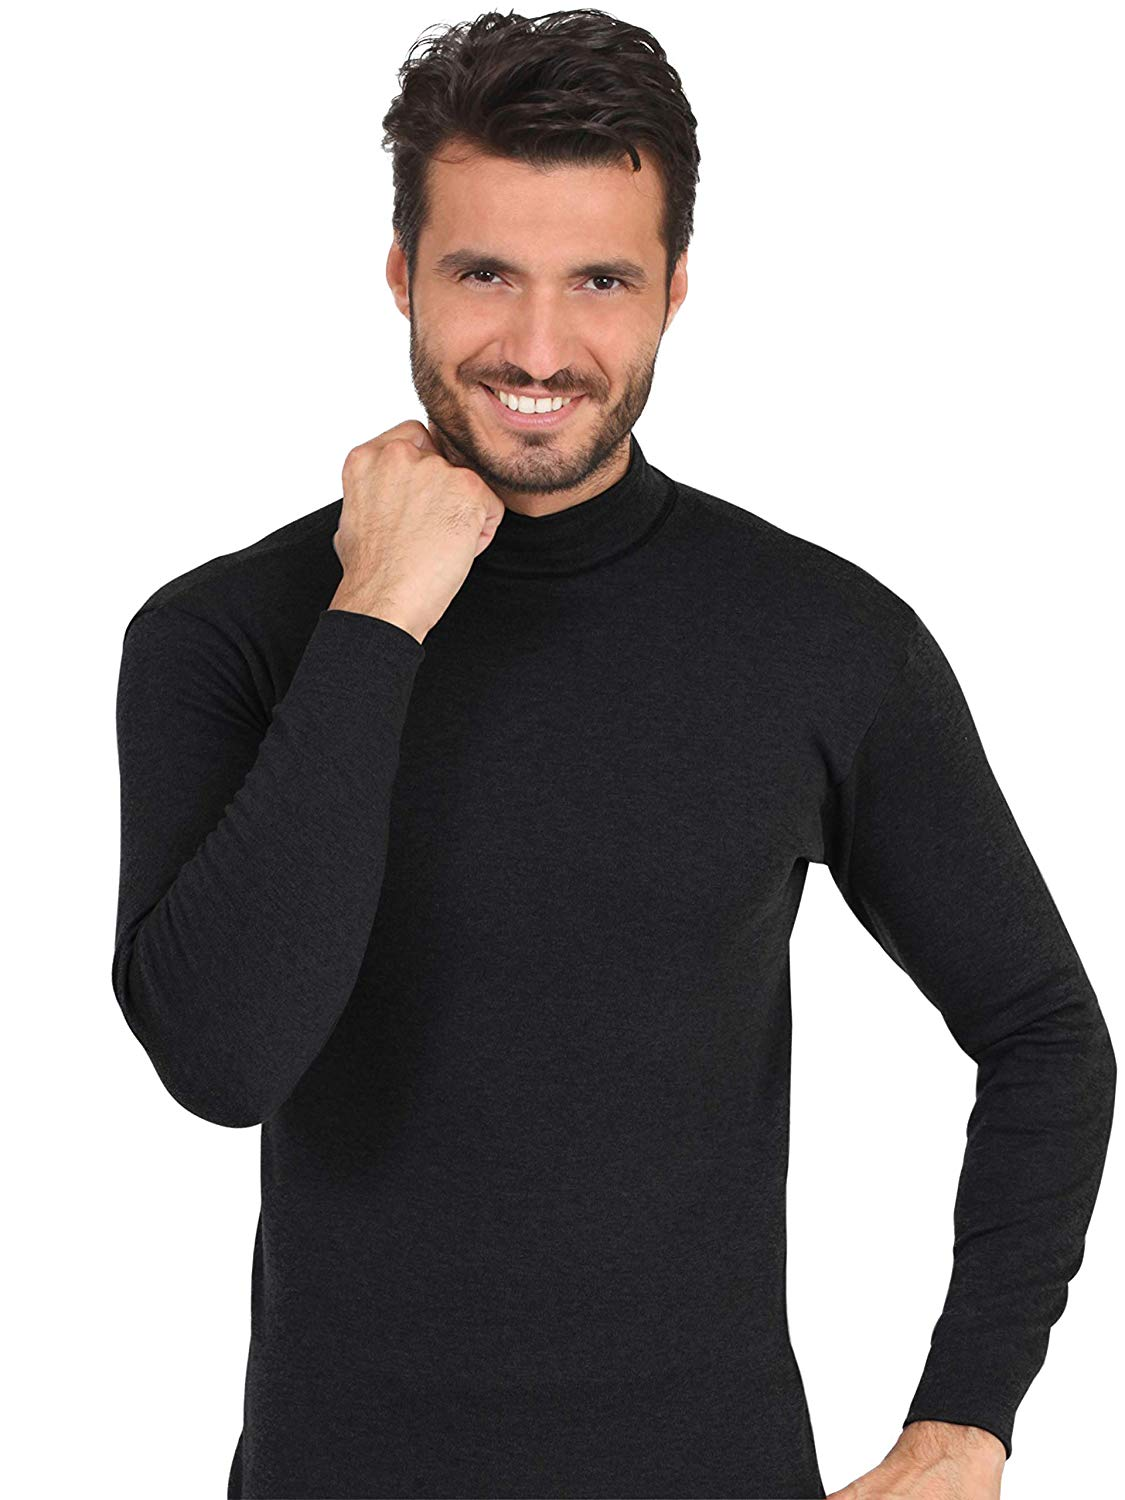 MaRe Premium Quality 100/% Brushed Cotton//Fleece Mens Long Sleeved T-Shirt Proudly Made in Italy.